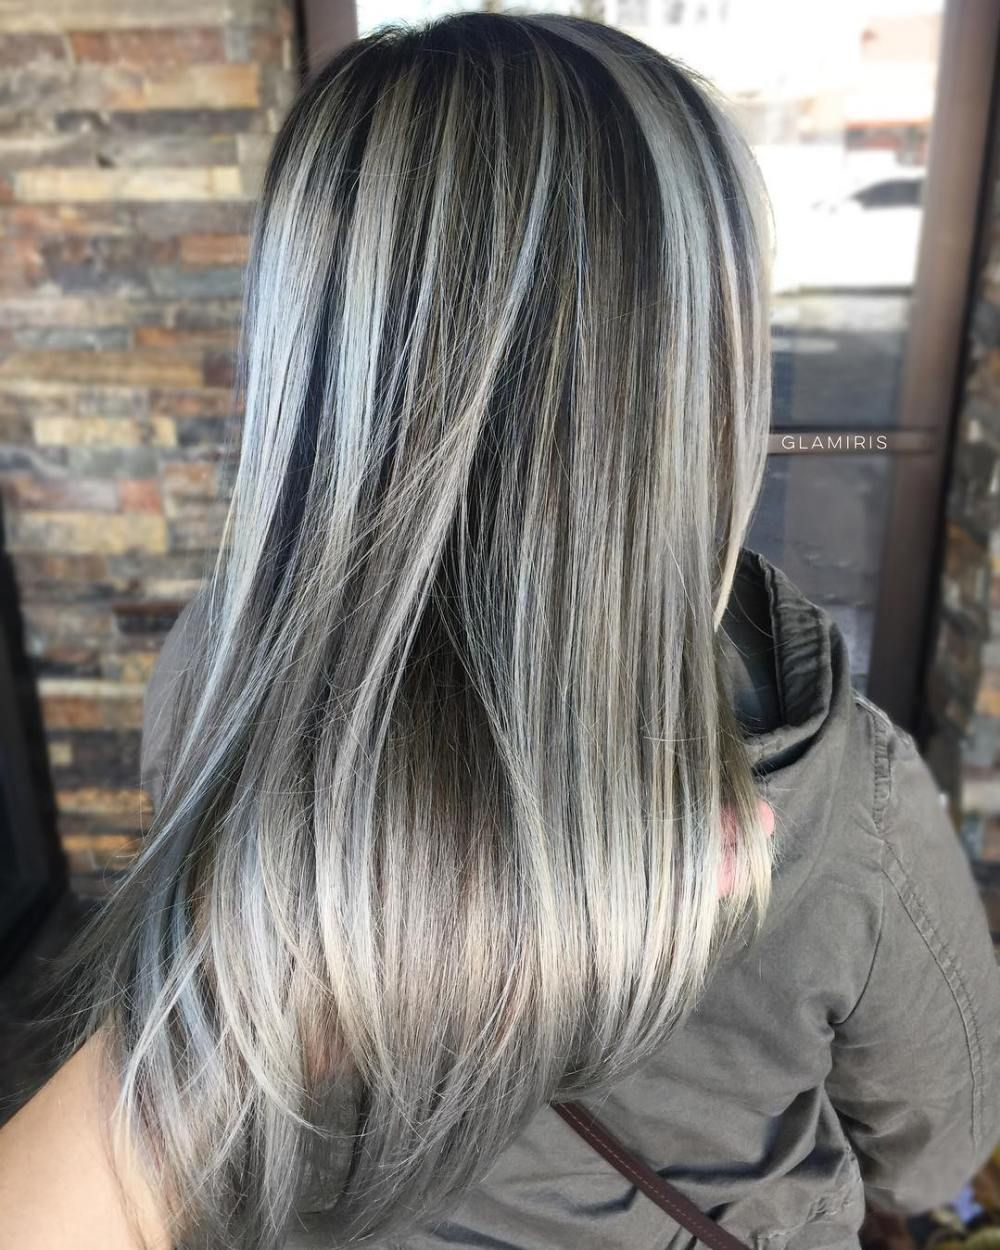 60 Shades Of Grey Silver And White Highlights For Eternal Youth Brown Hair With Ash Blonde Highlights Ash Blonde Highlights Grey Hair Color